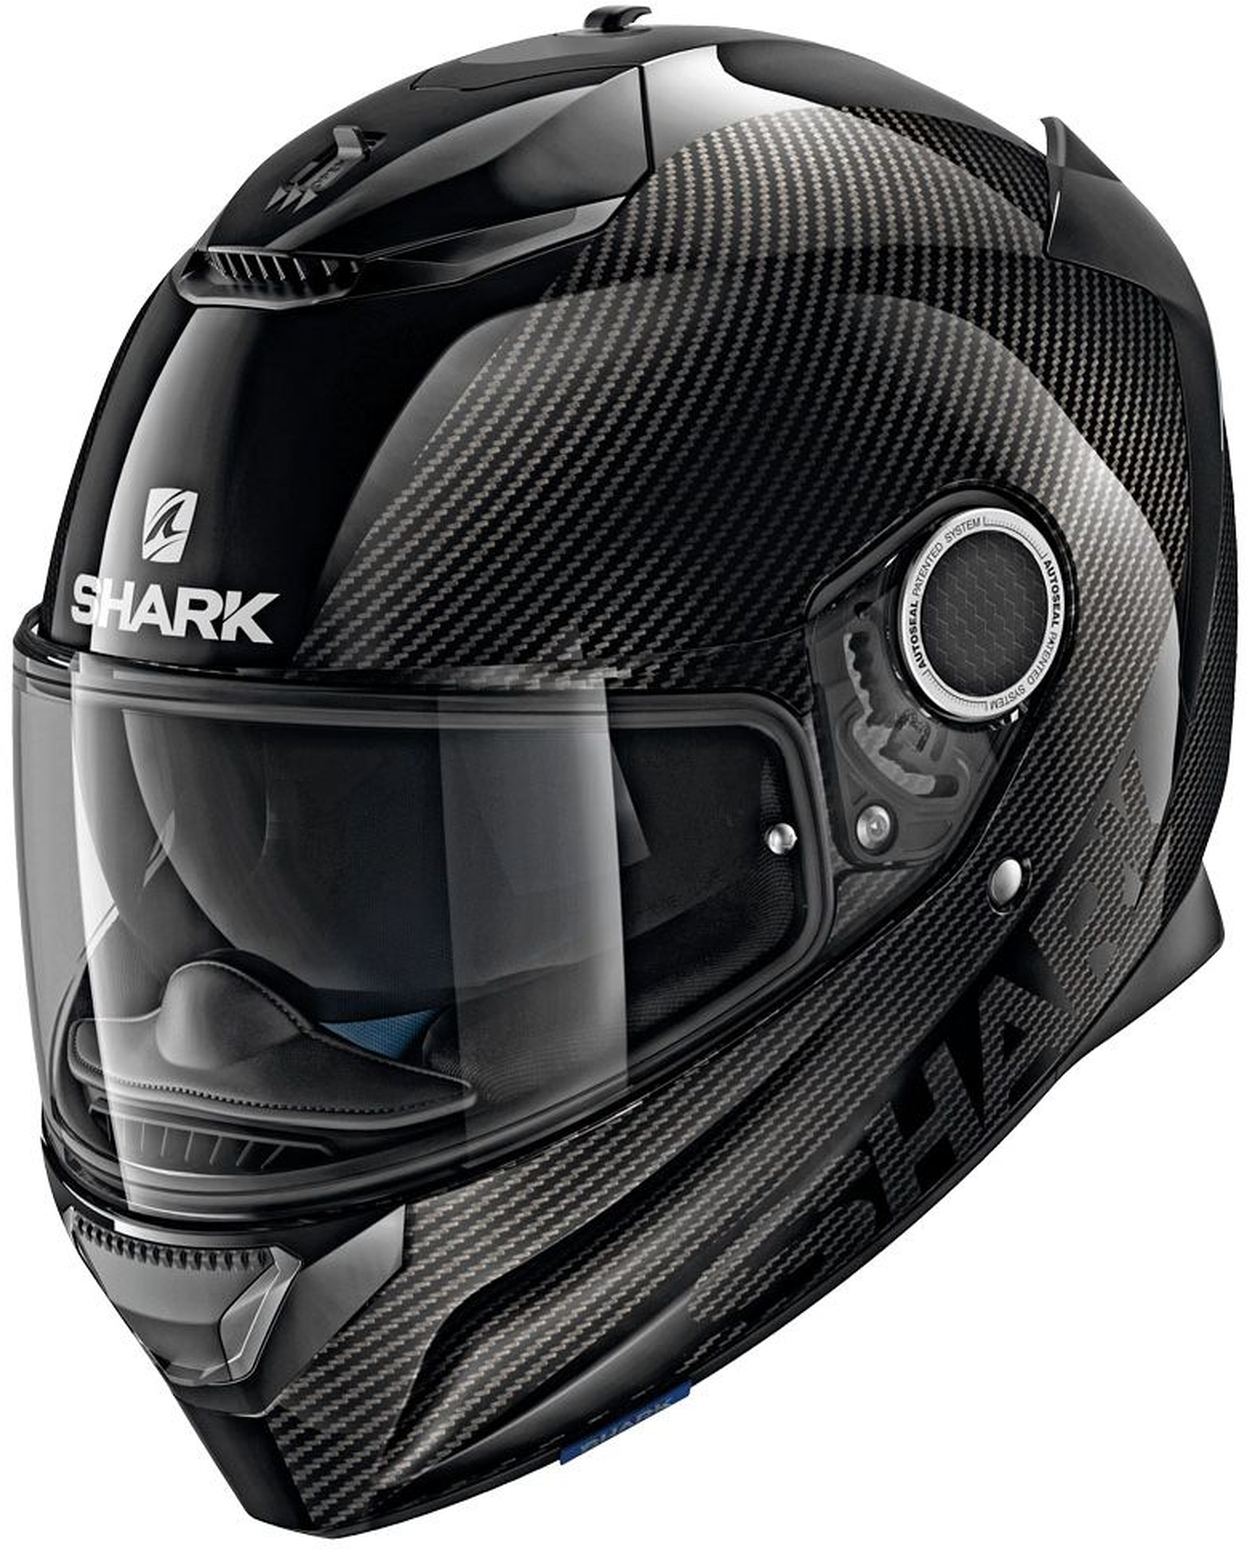 casco spartan carbon integrale shark in fibra e carbonio carbonio ebay. Black Bedroom Furniture Sets. Home Design Ideas